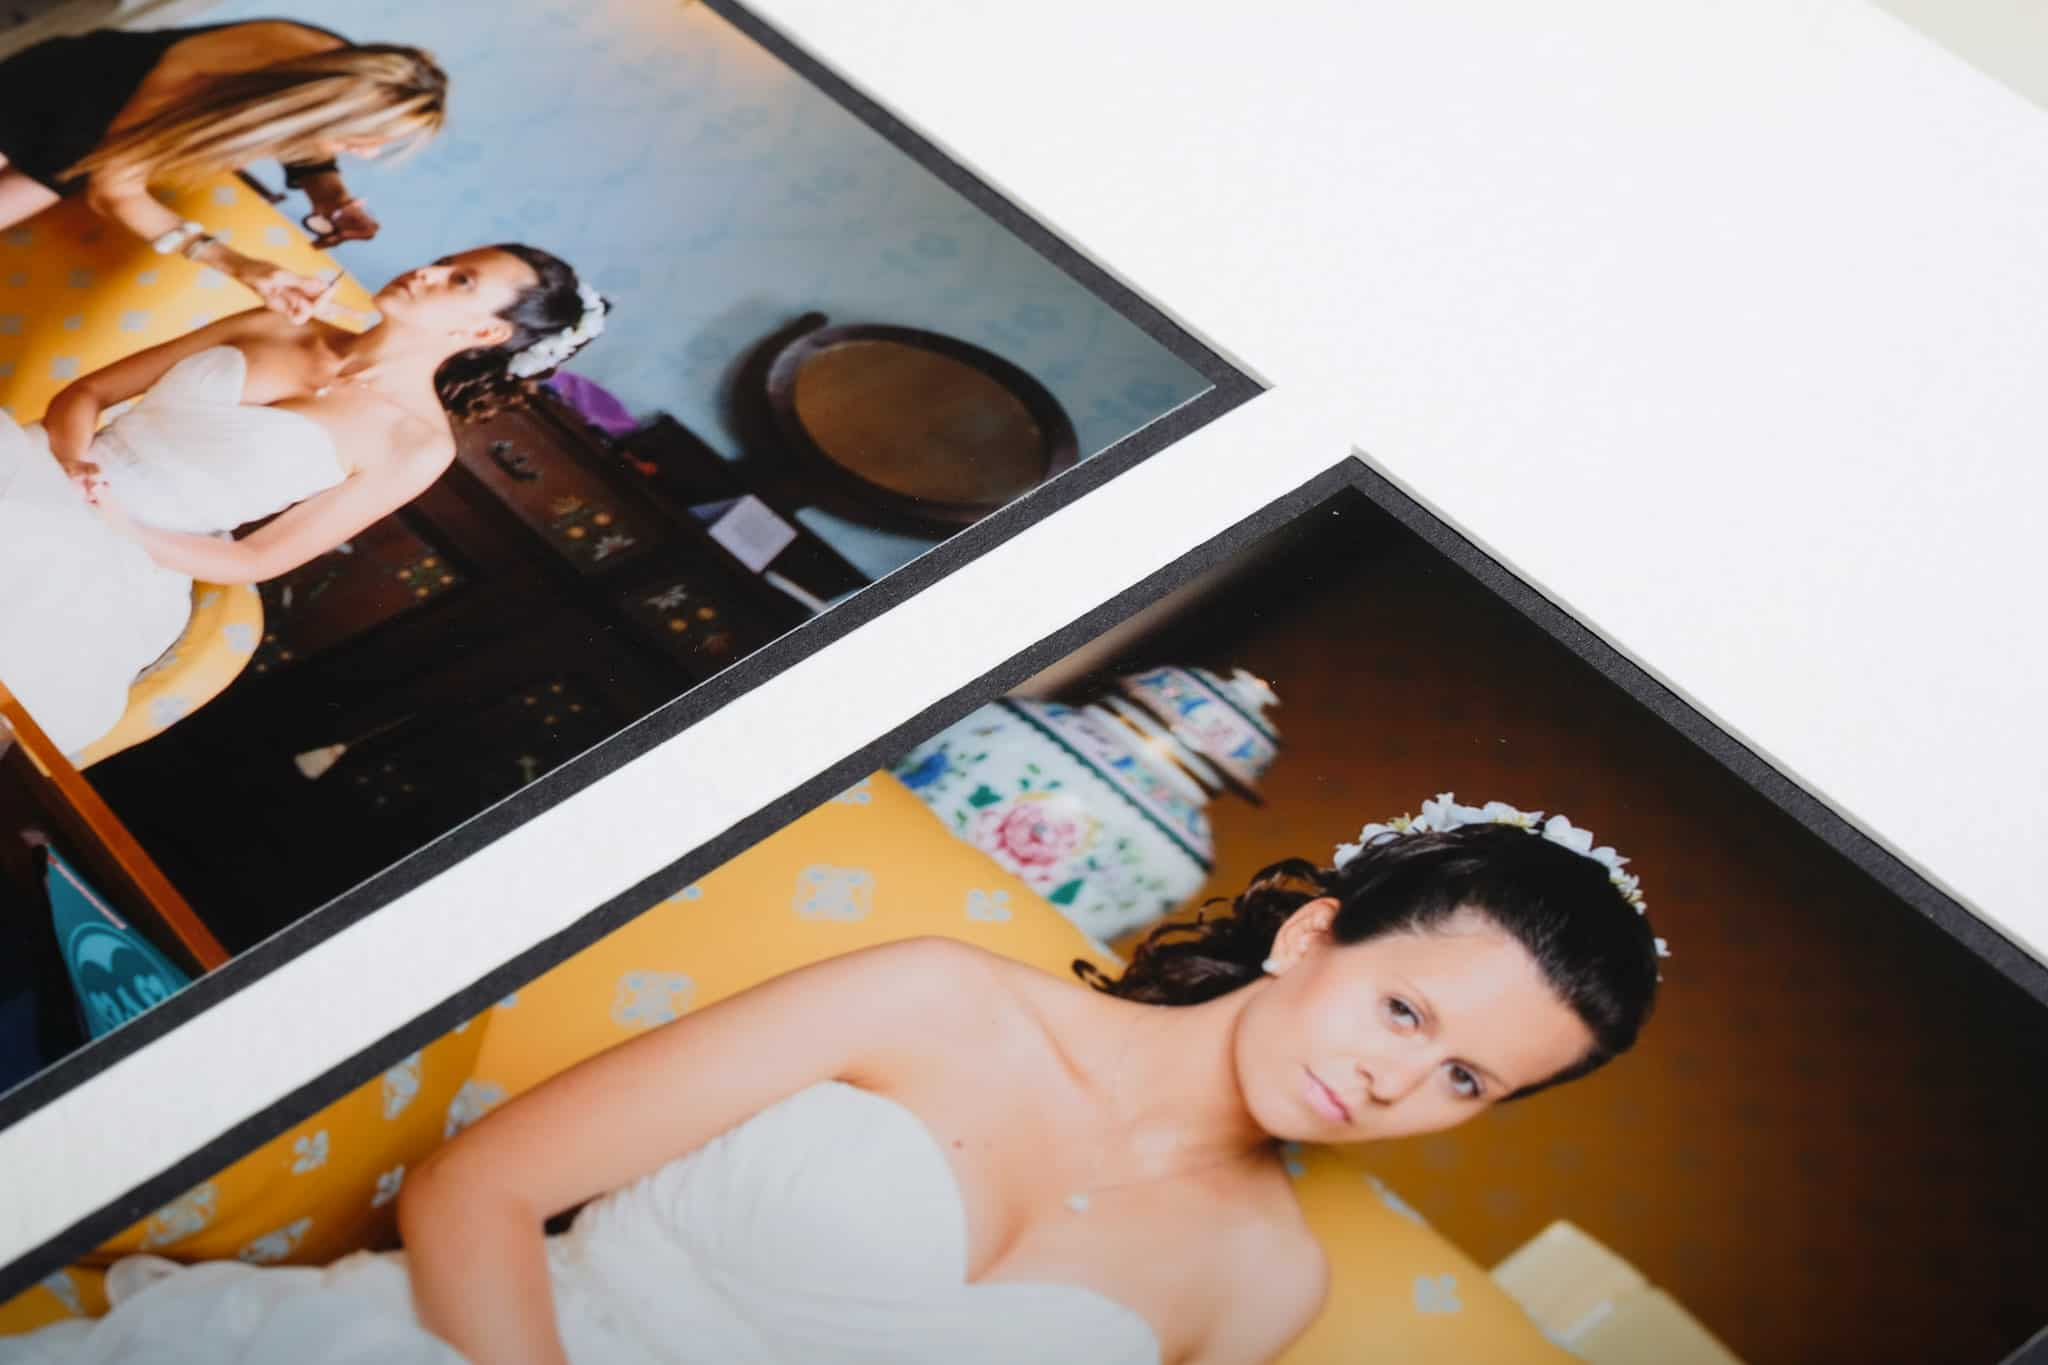 Closeup of pagemounted prints of Queensberry duo pagemount wedding photo album.